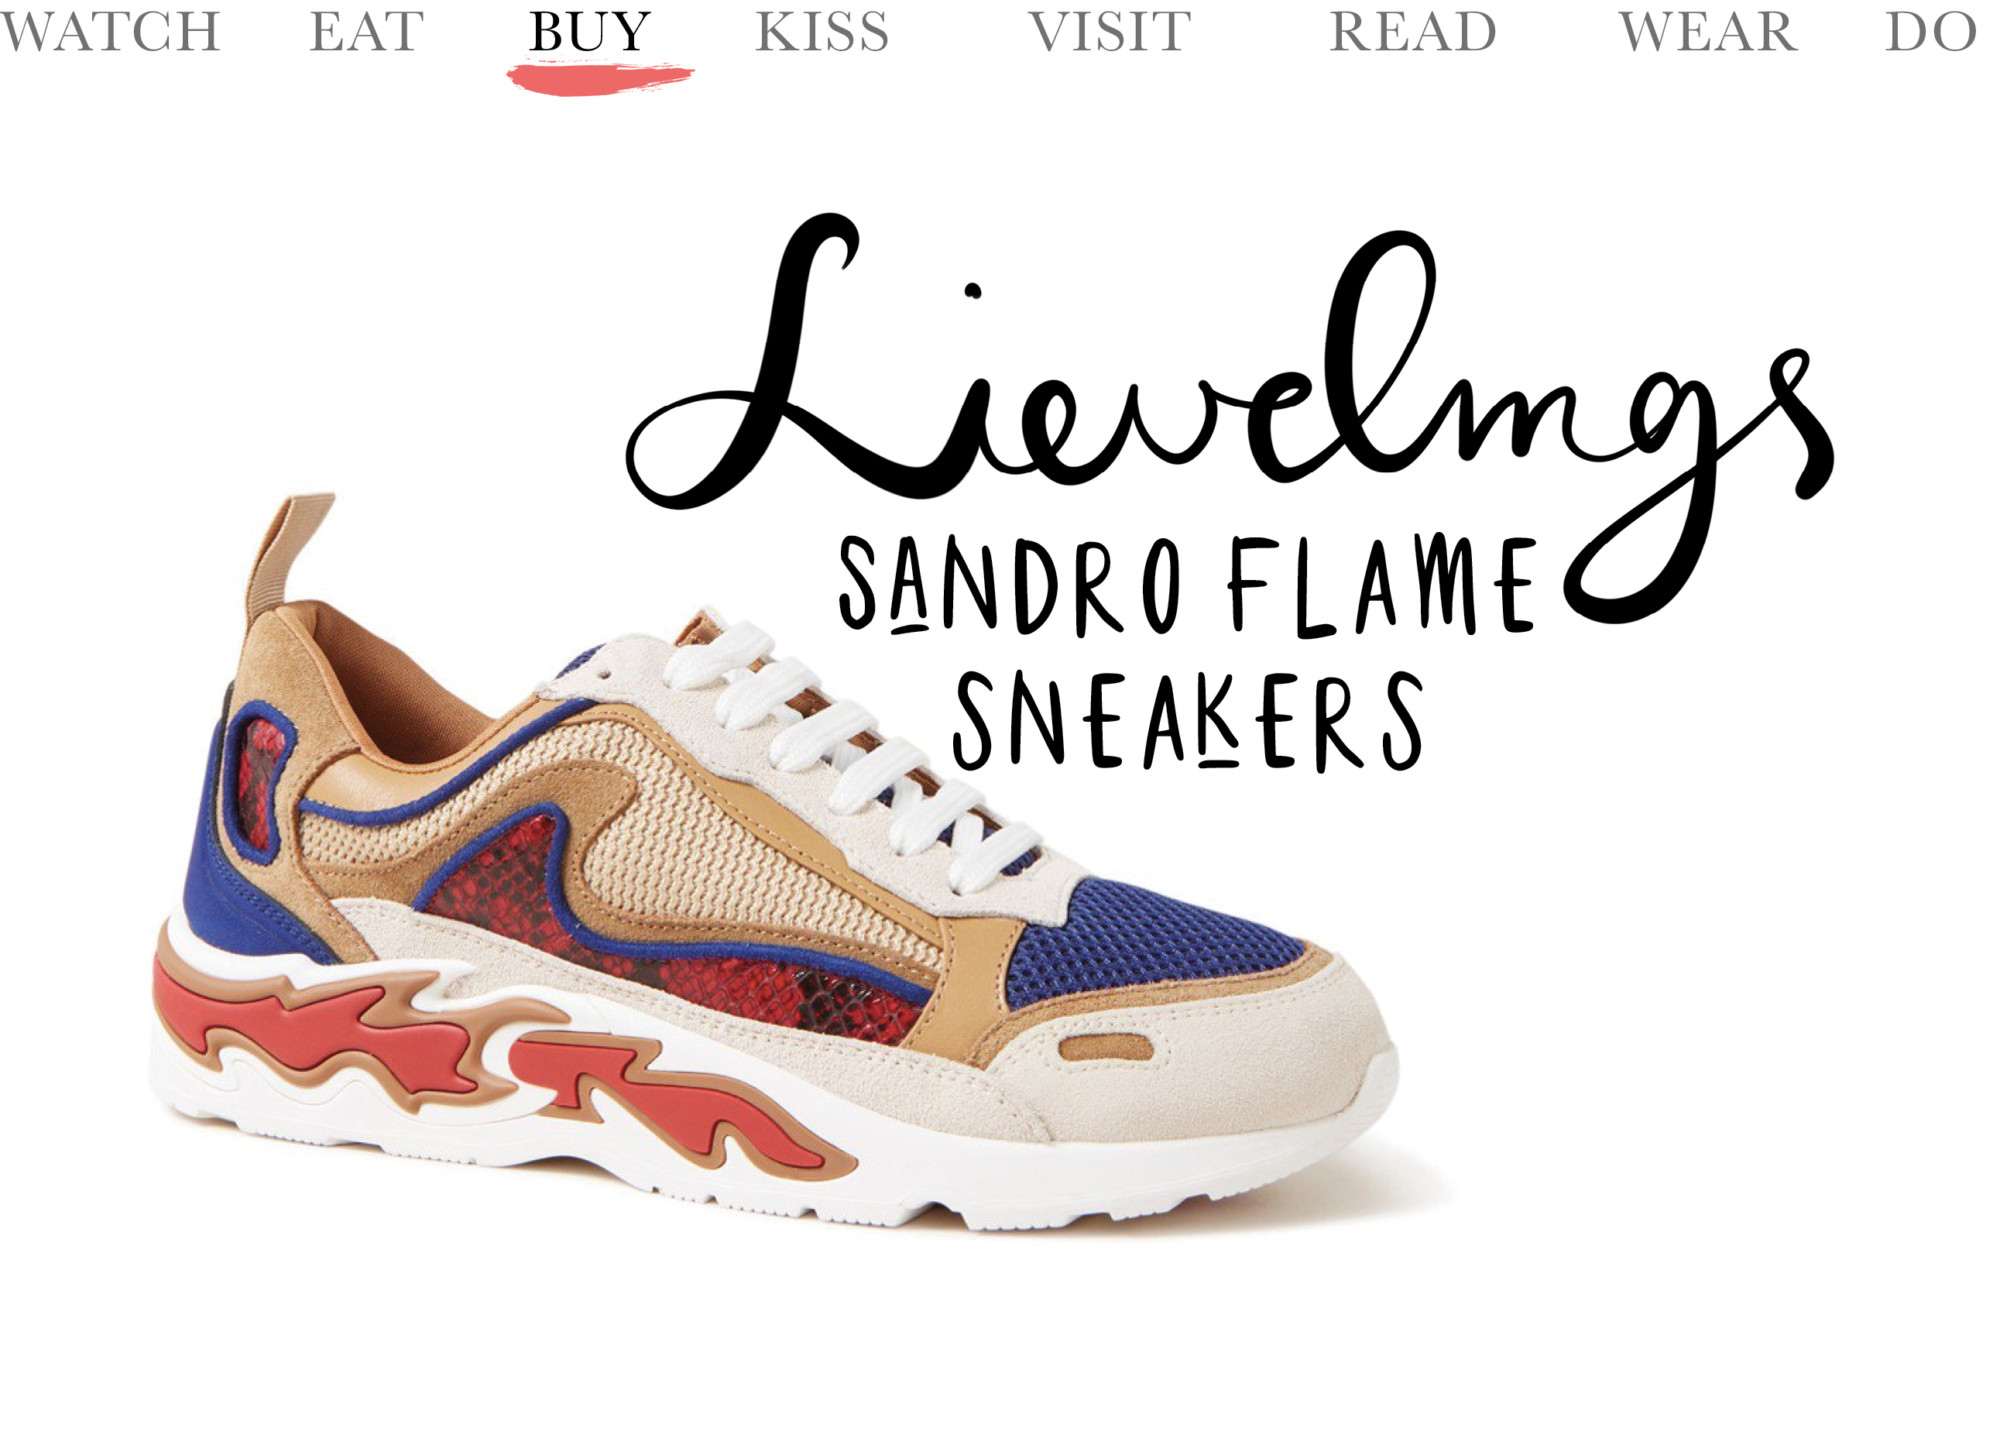 today we buy sandro flame sneakers met suede details in de kleuren creme, beige, blauw en rood. tekst lievelings